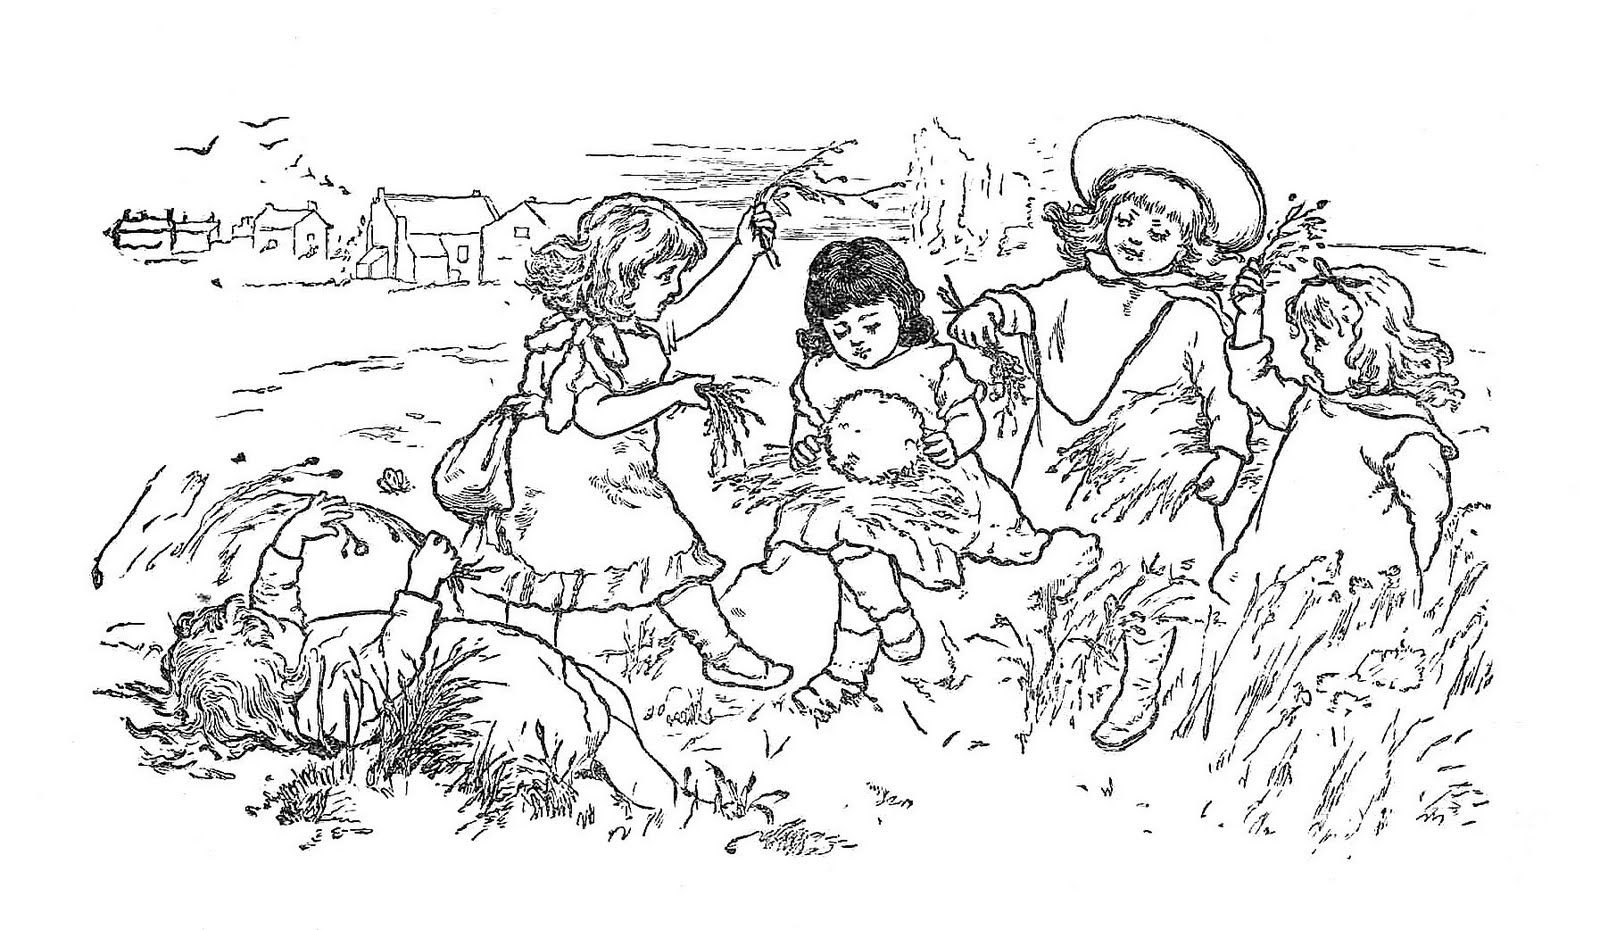 Free Clip Art Of Children Black And White Illustrations From Victorian Storybook Black And White Illustration Free Clip Art Clip Art